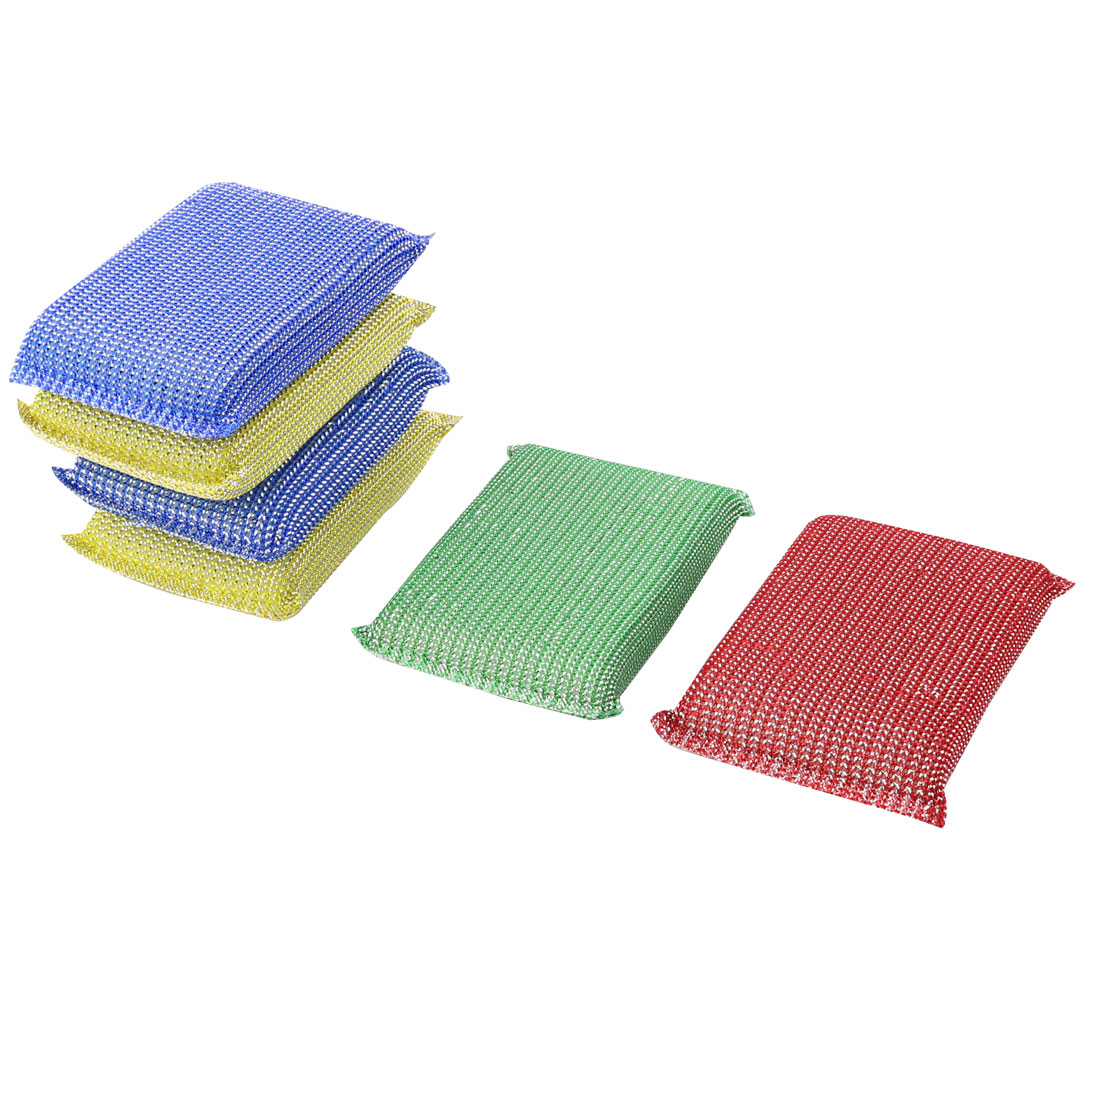 Kitchen Bowl Dish Sponge Rectangle Shaped Scrubber Cleaning Cleaner Pads 6pcs